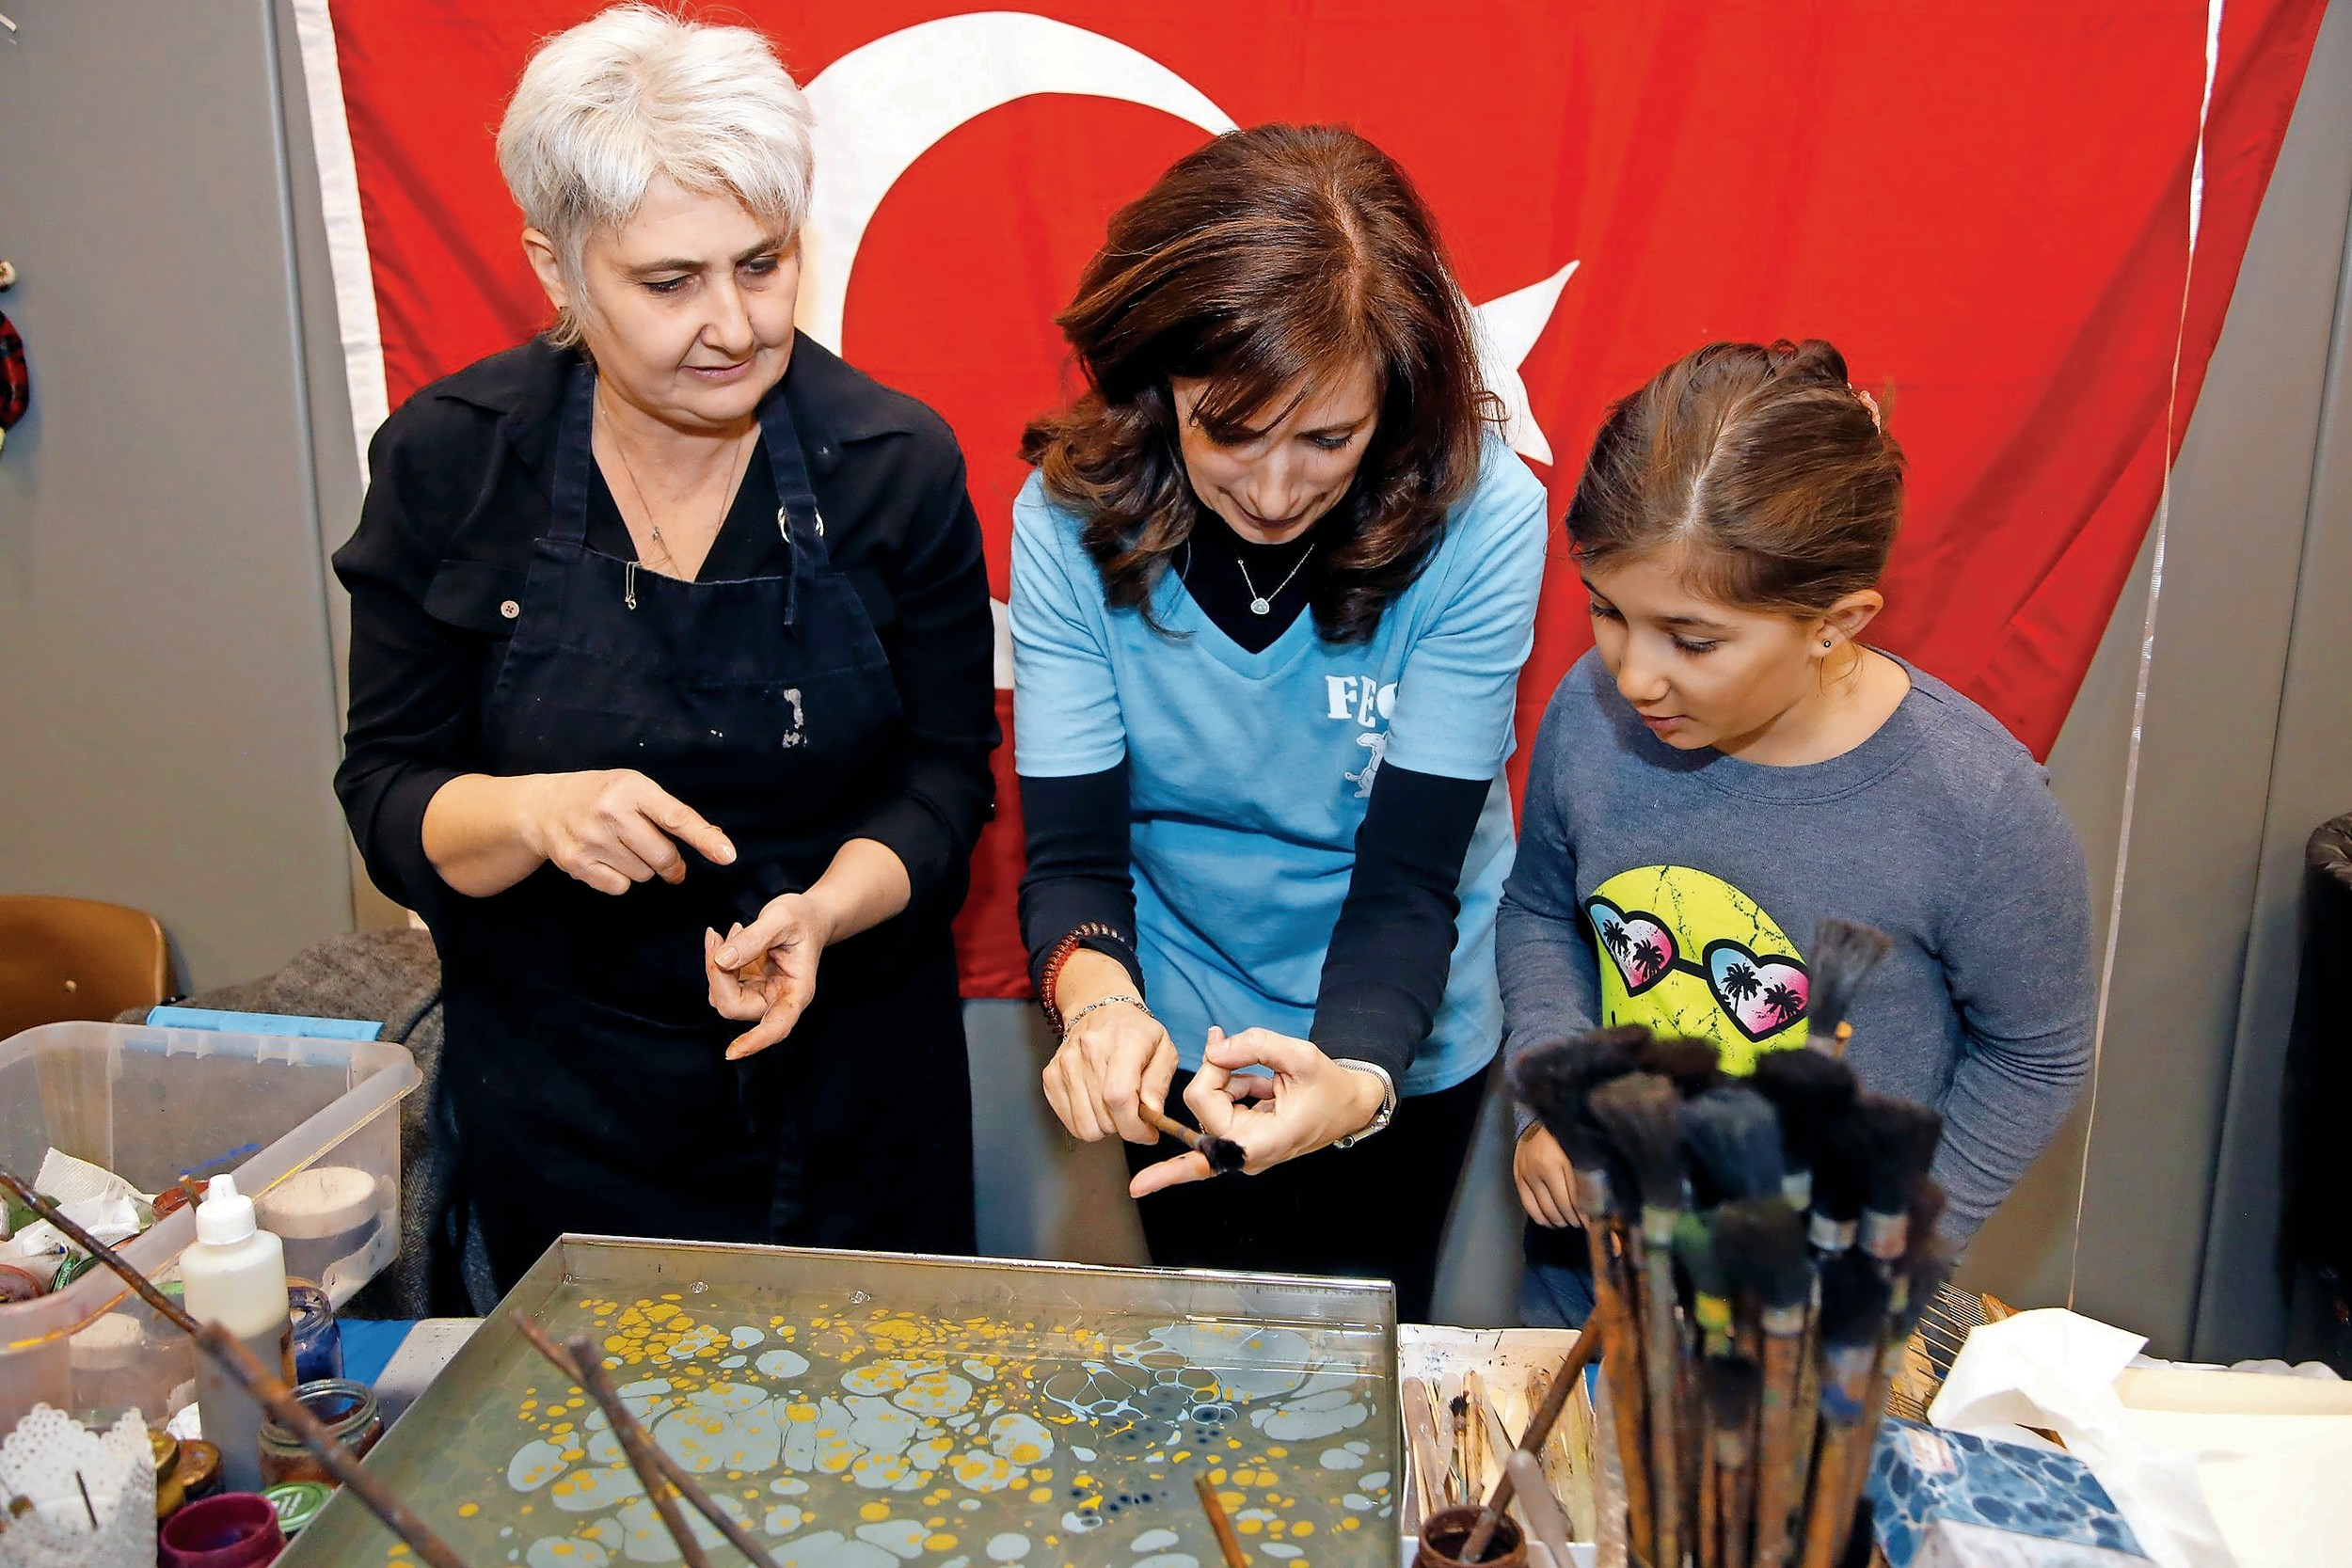 Turkish artist Bingul Sevimli oversaw Franklin Early Childhood Center Principal Lorraine Smyth, center, and Deniz Artan create a piece of artwork.